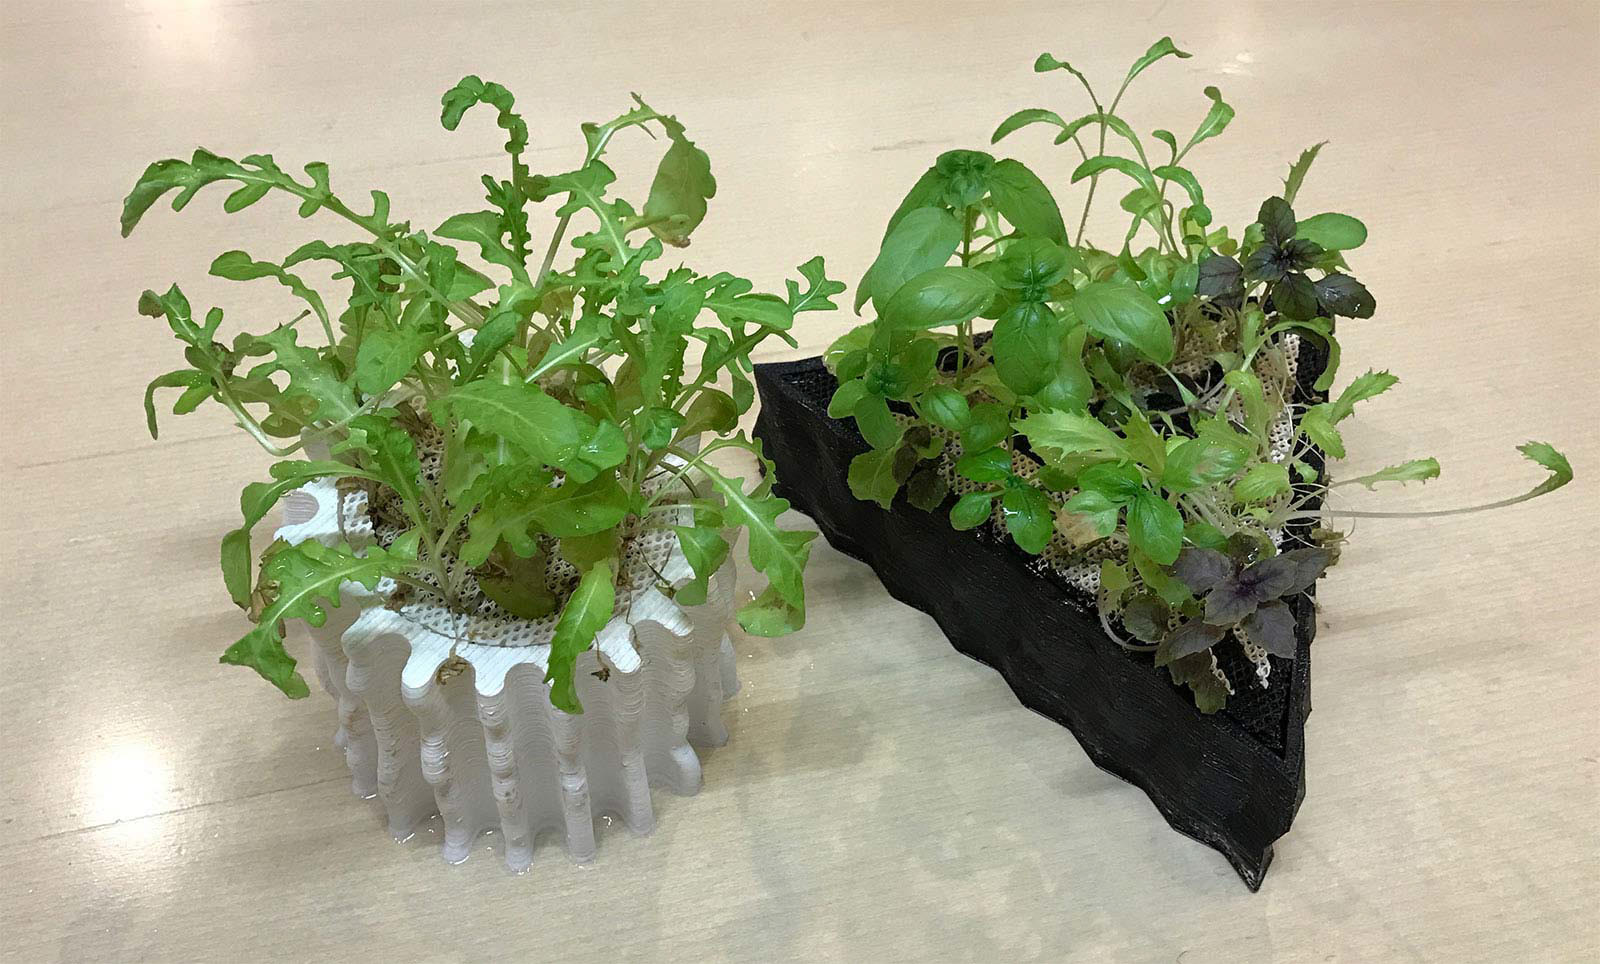 3D Printed Hydroponic Substrates examples